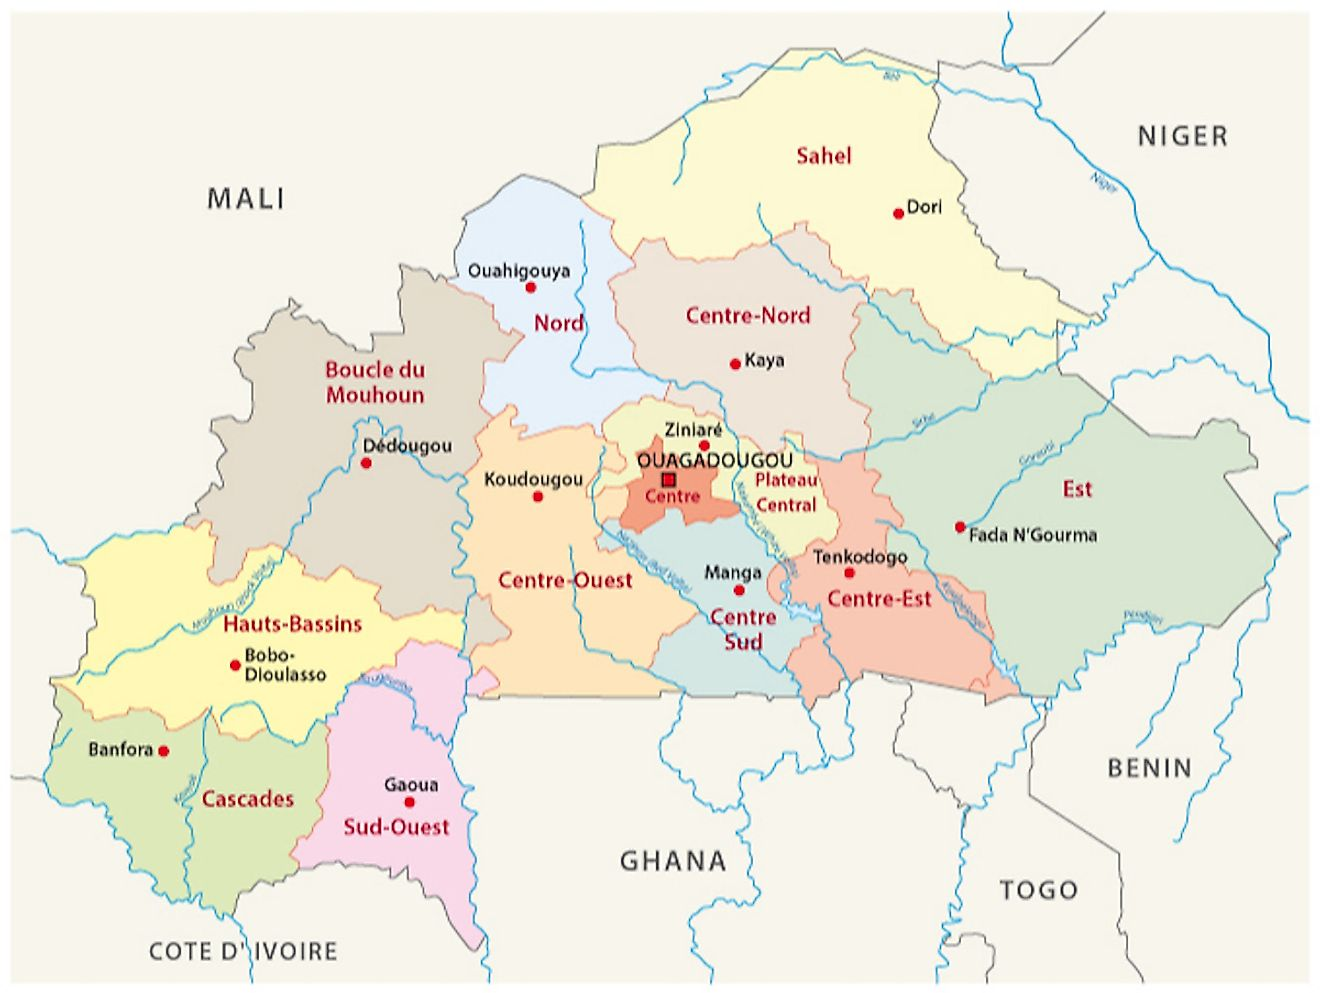 Political map of Burkina Faso displaying its 13 regions, their capitals, and the national capital of Ouagadougou.